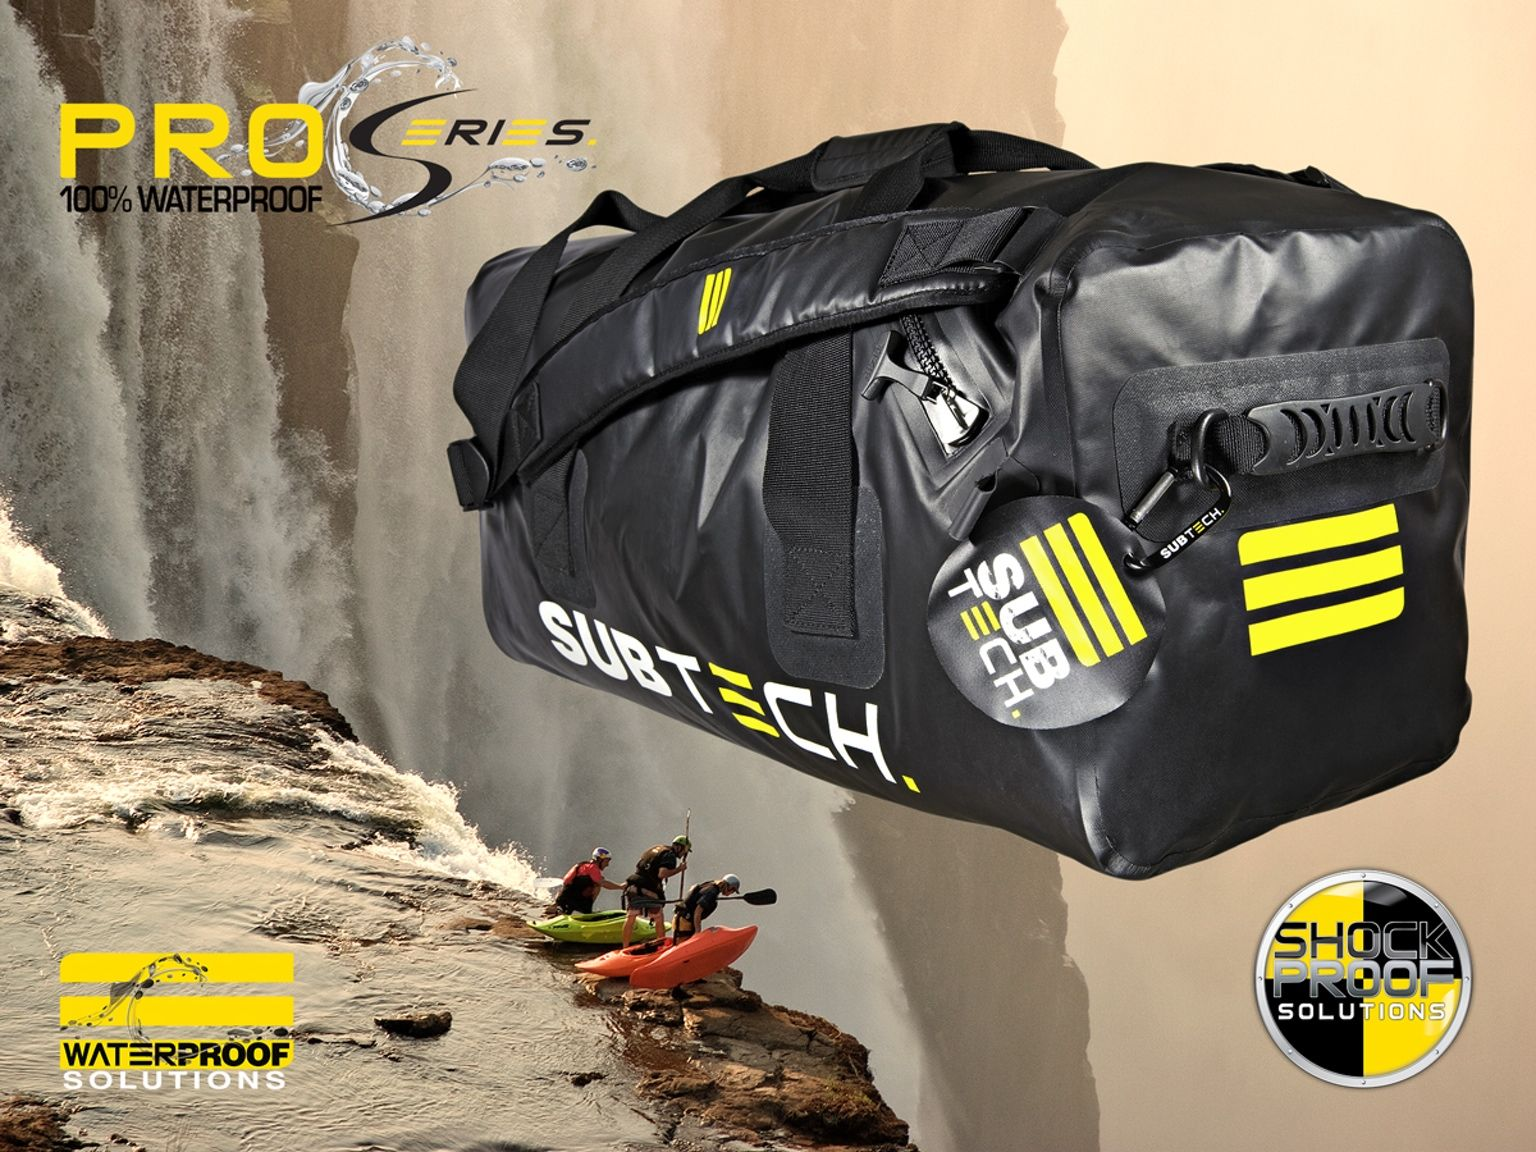 We aim to develop the most extreme sport bag available in the market and choose to not compromise on any materials or functions!